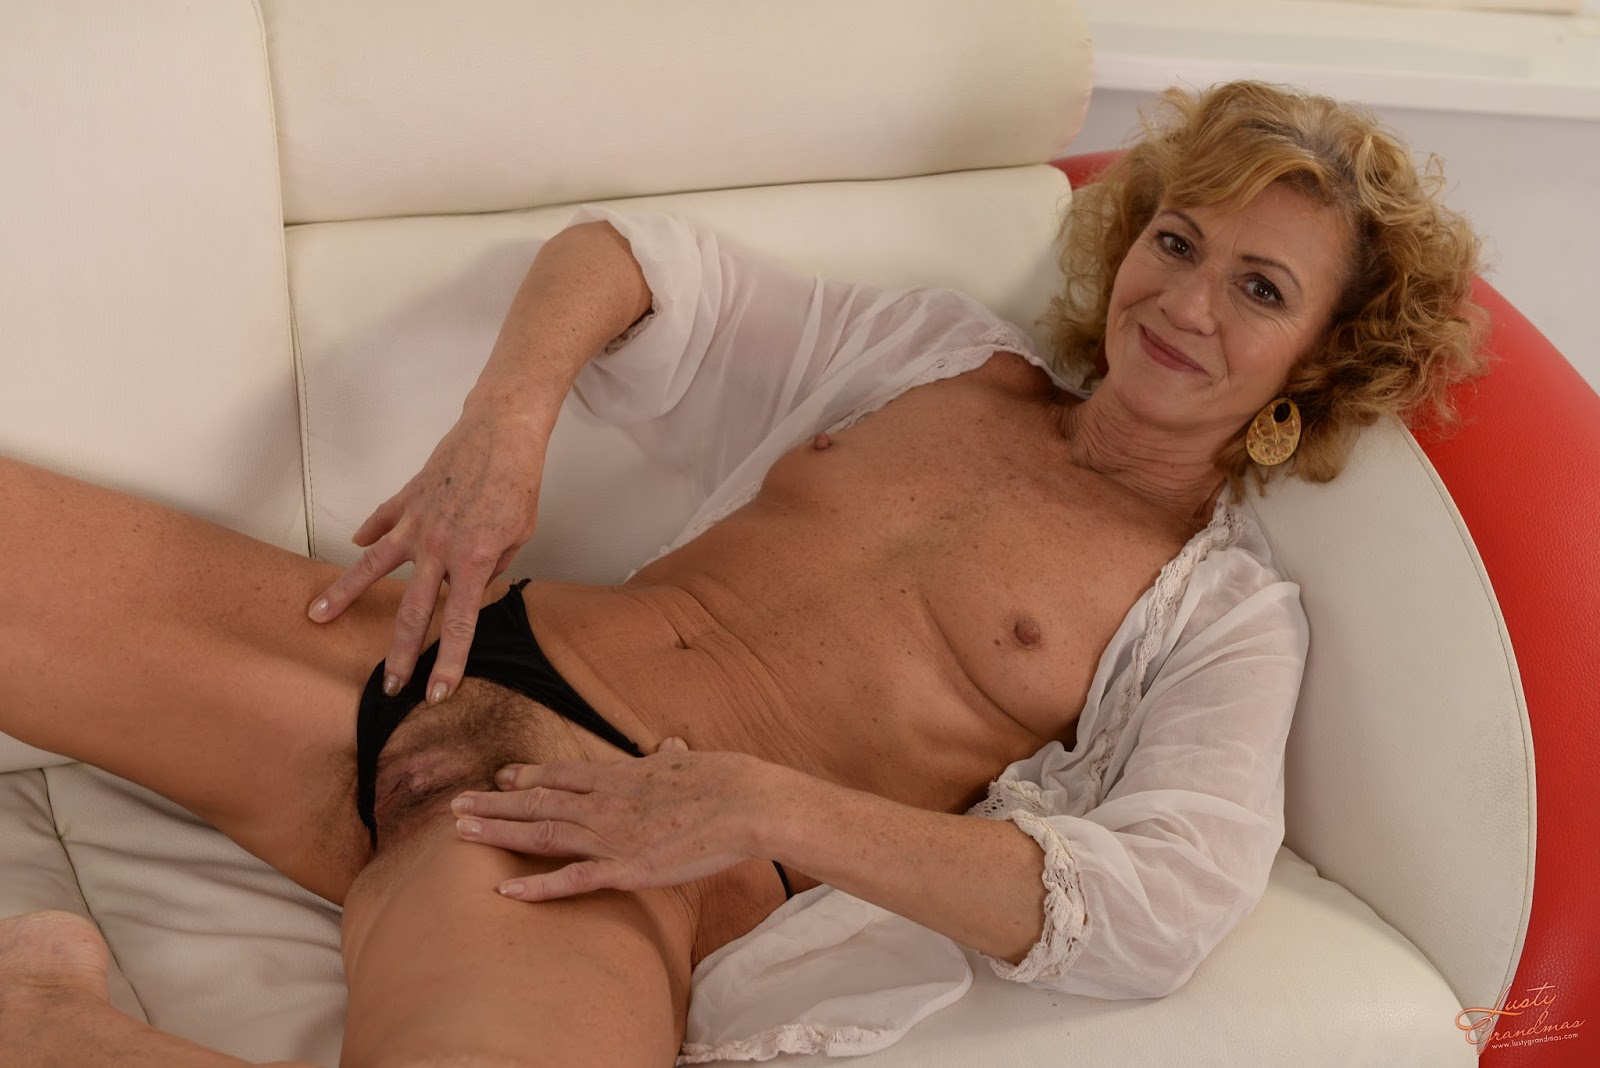 Porn old woman skin adult picture